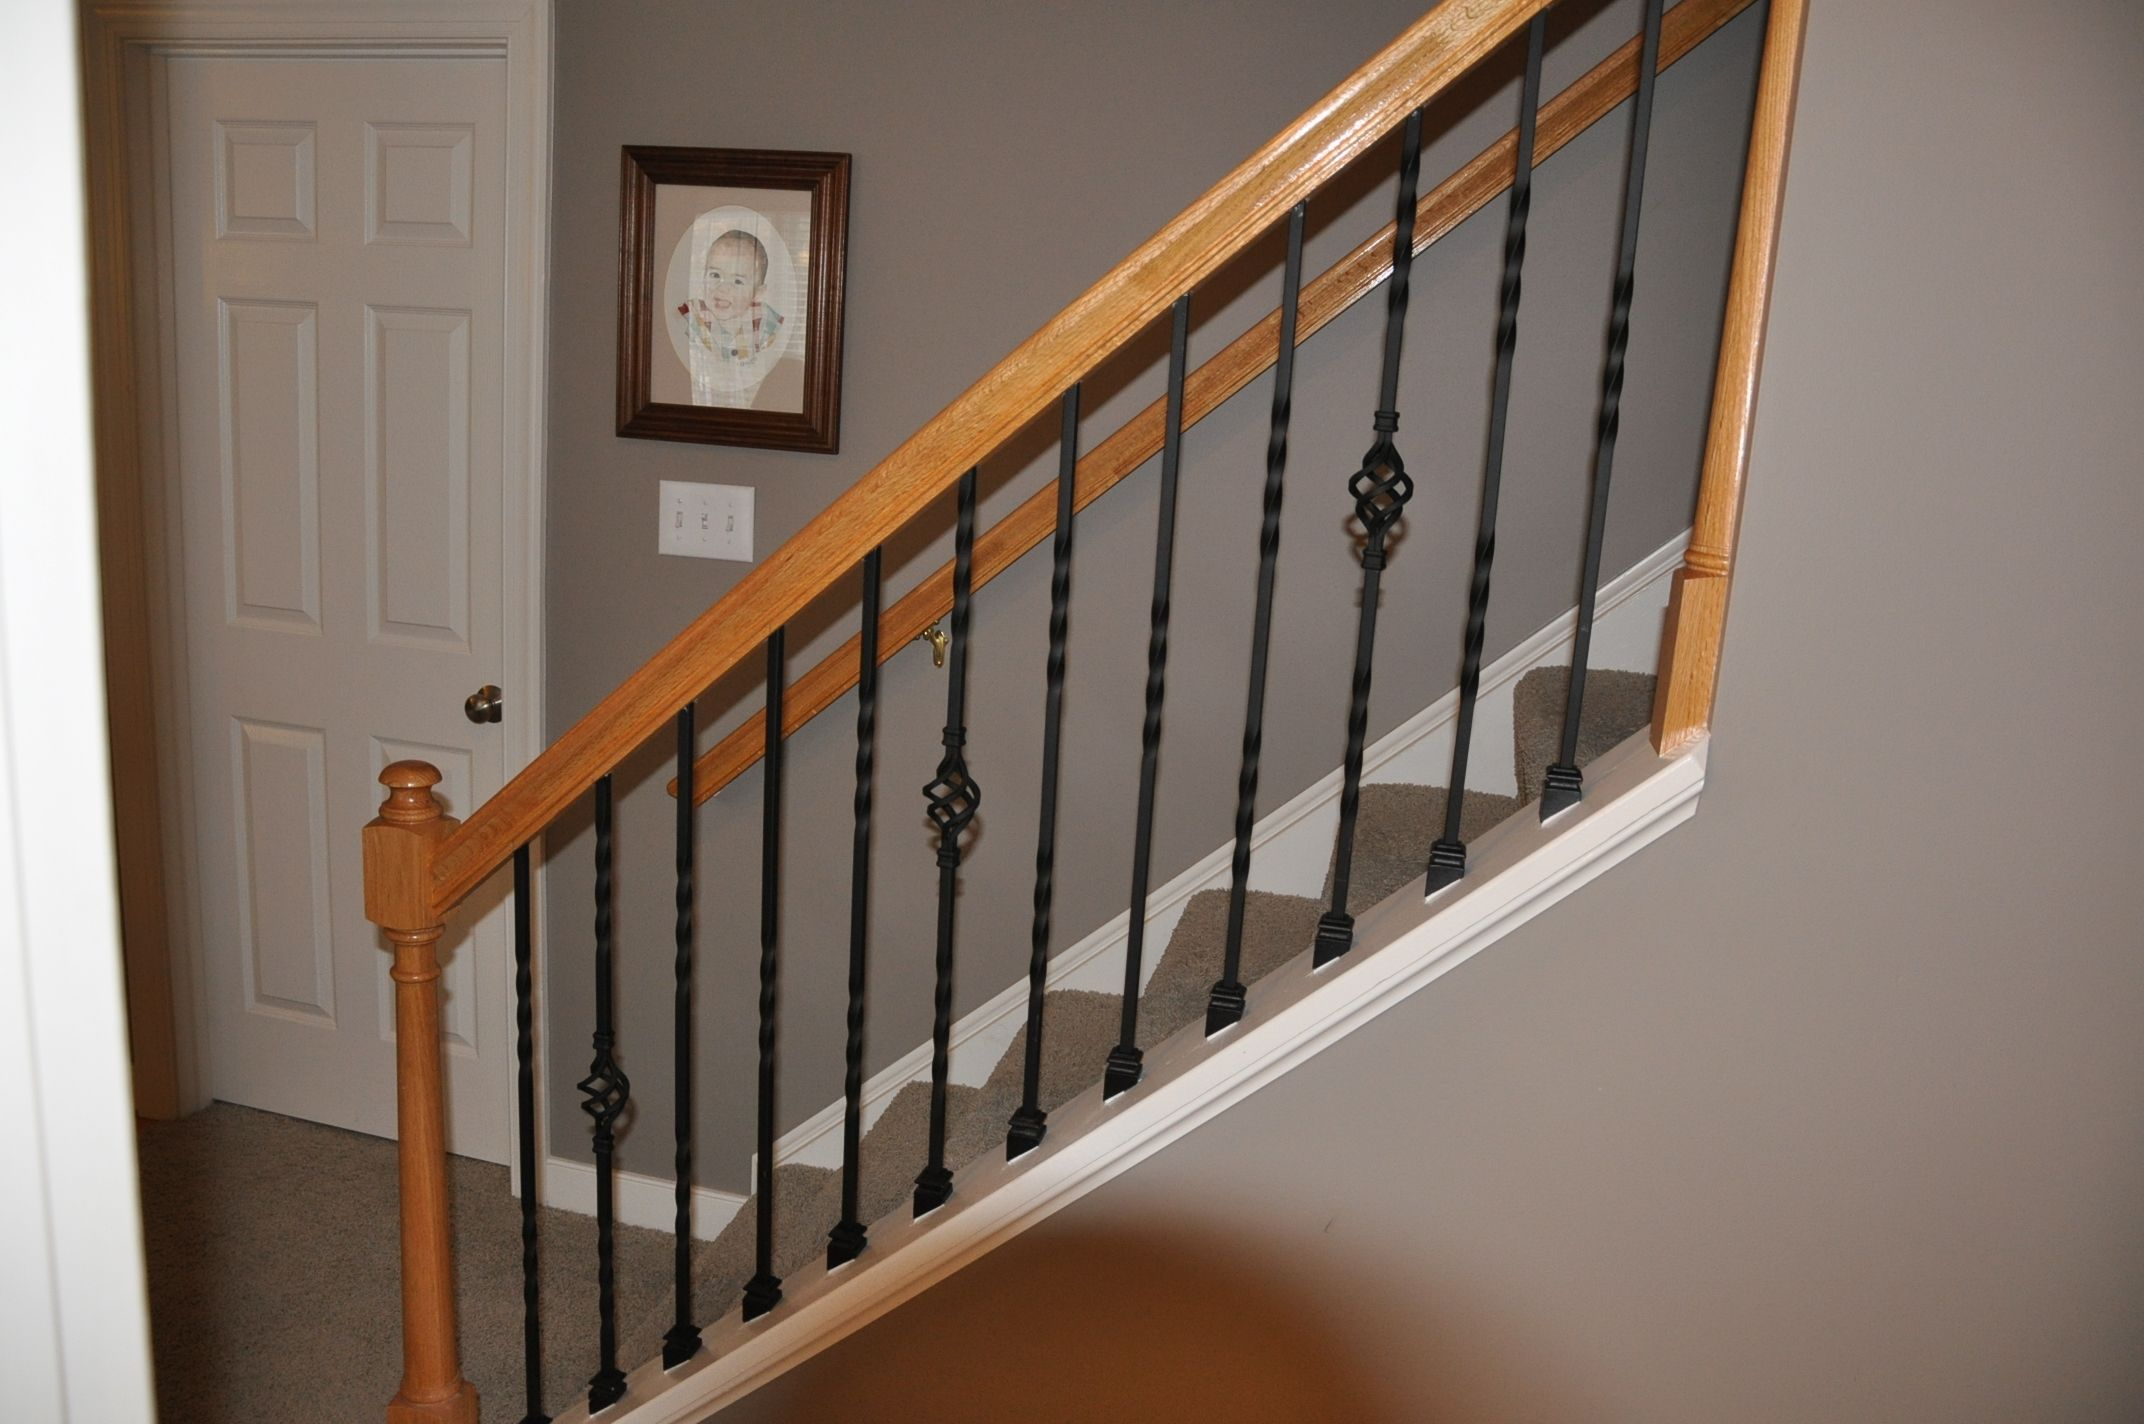 Wrought Iron Stair Railing Home Decoration Ideas The home office - halloween decorations for the office